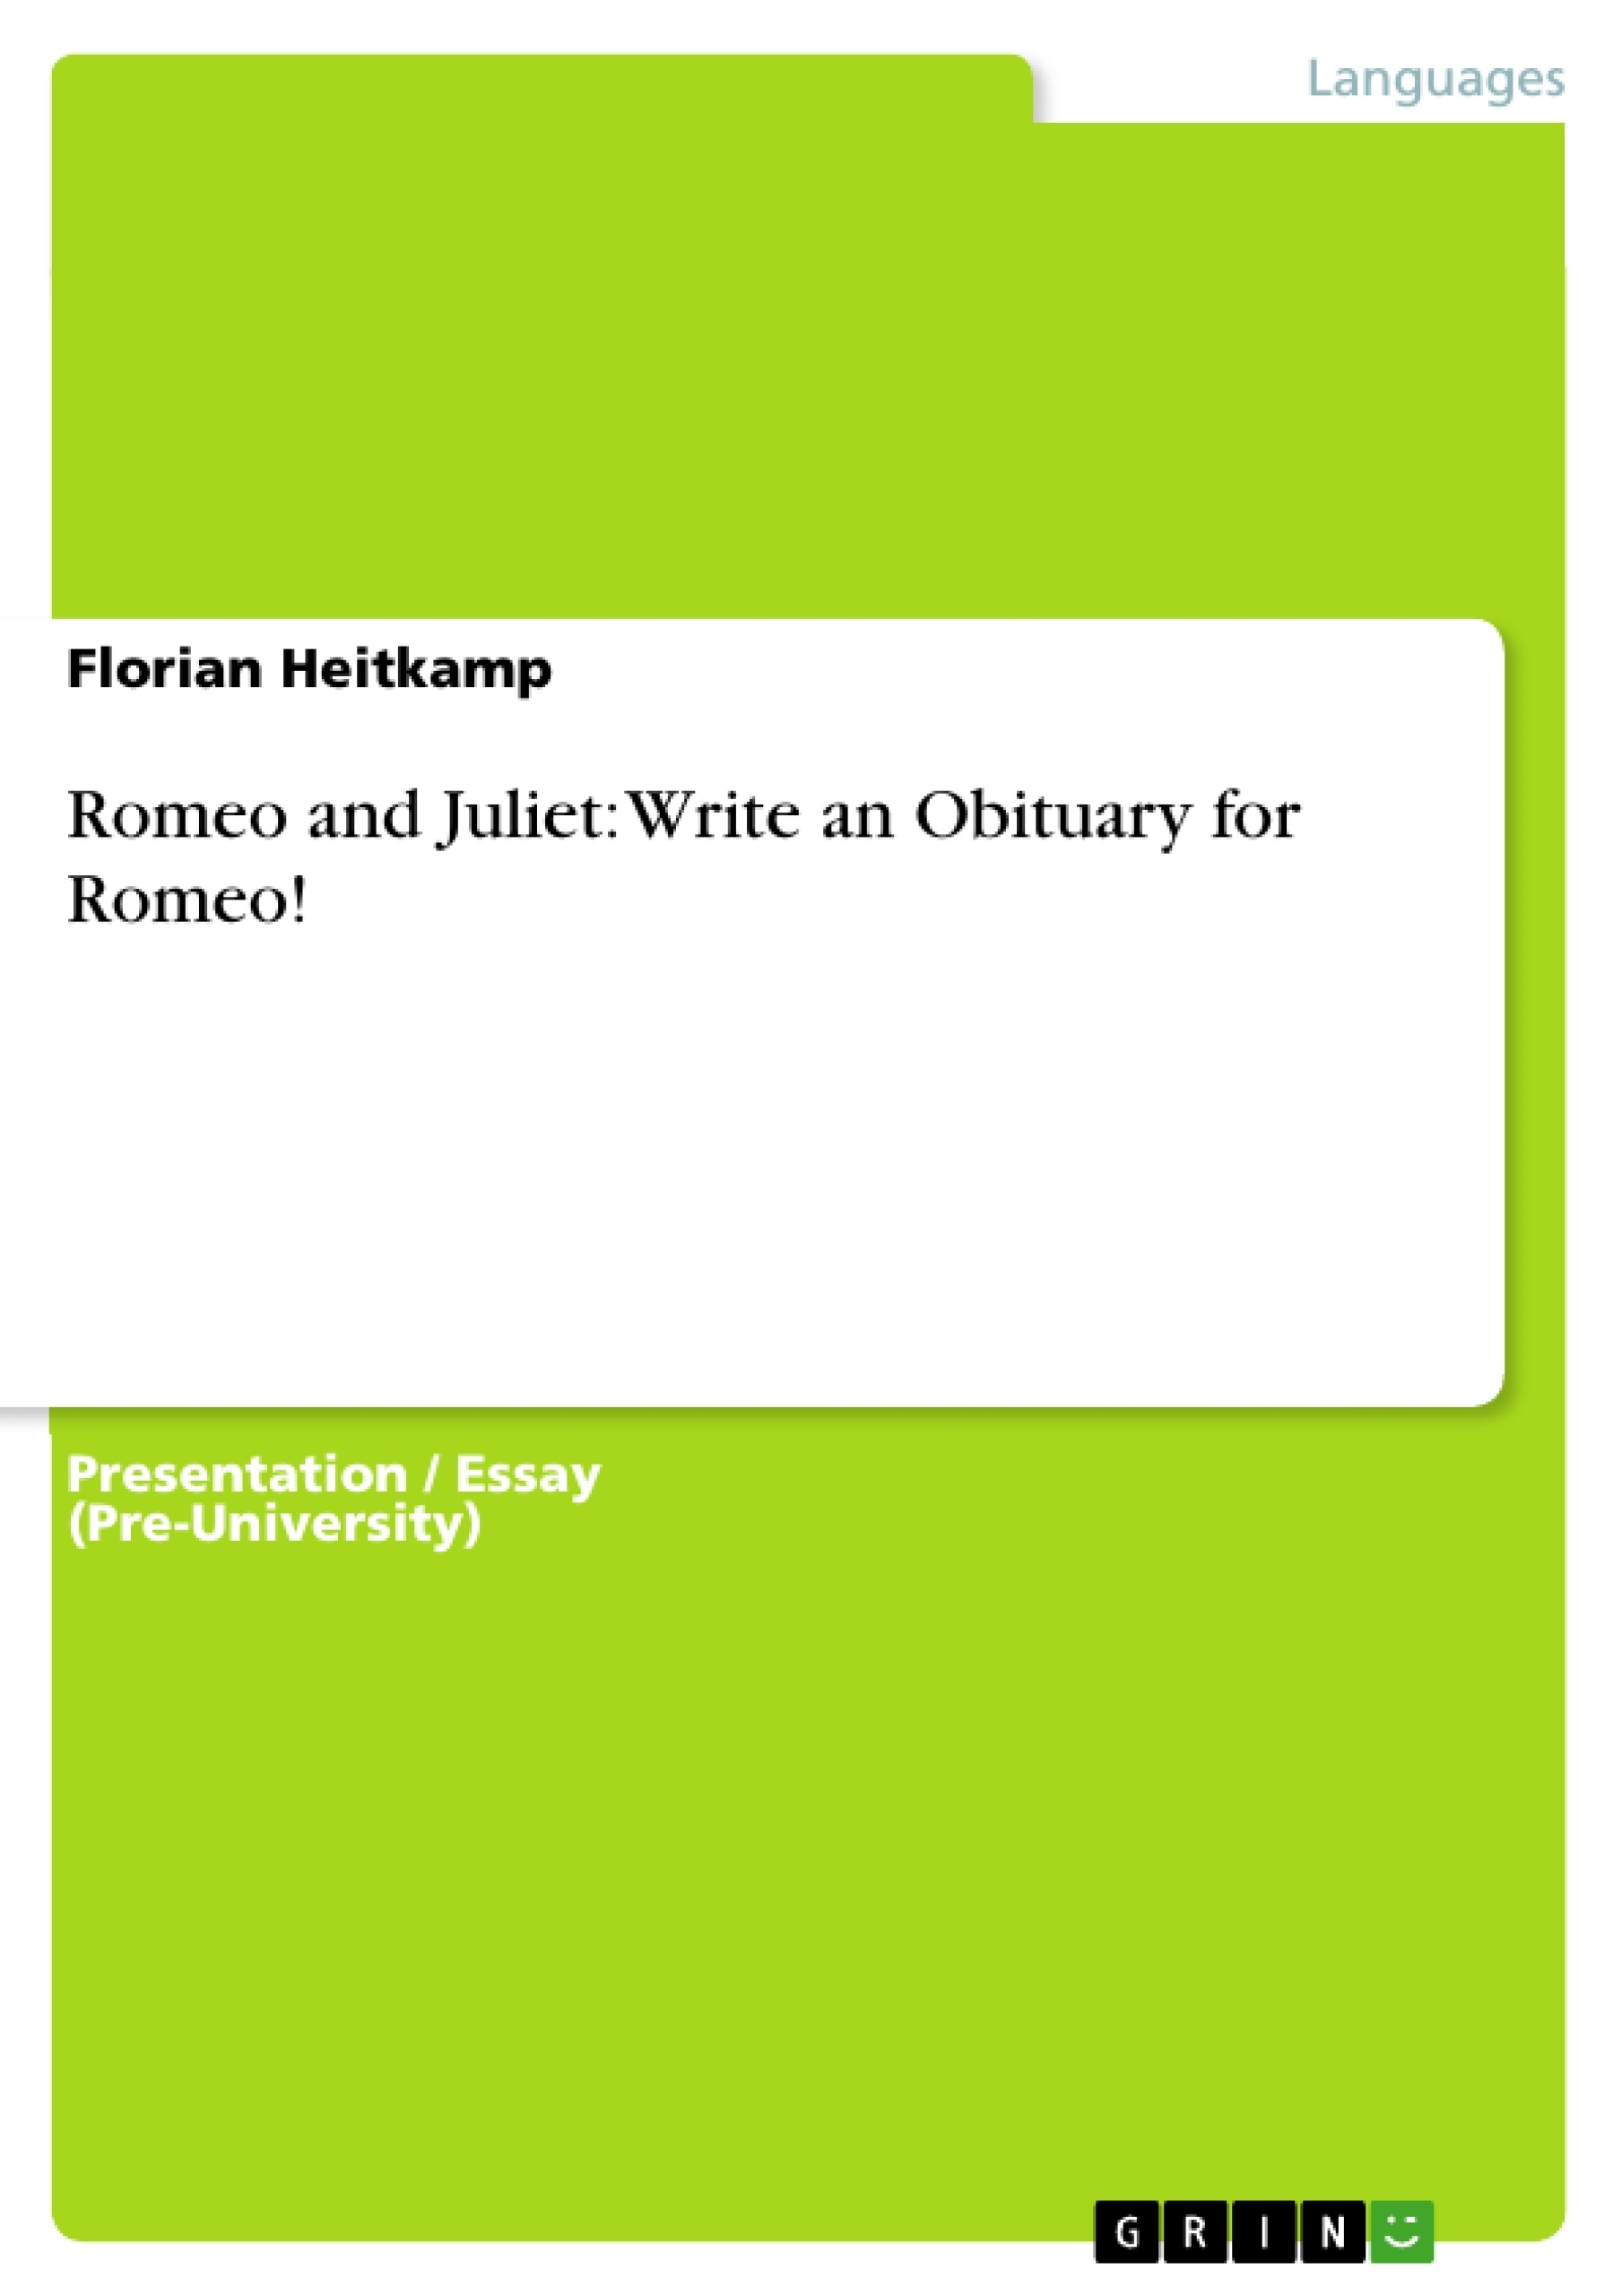 romeo and juliet essay topics grade essay topics romeo and juliet write an obituary for publish your